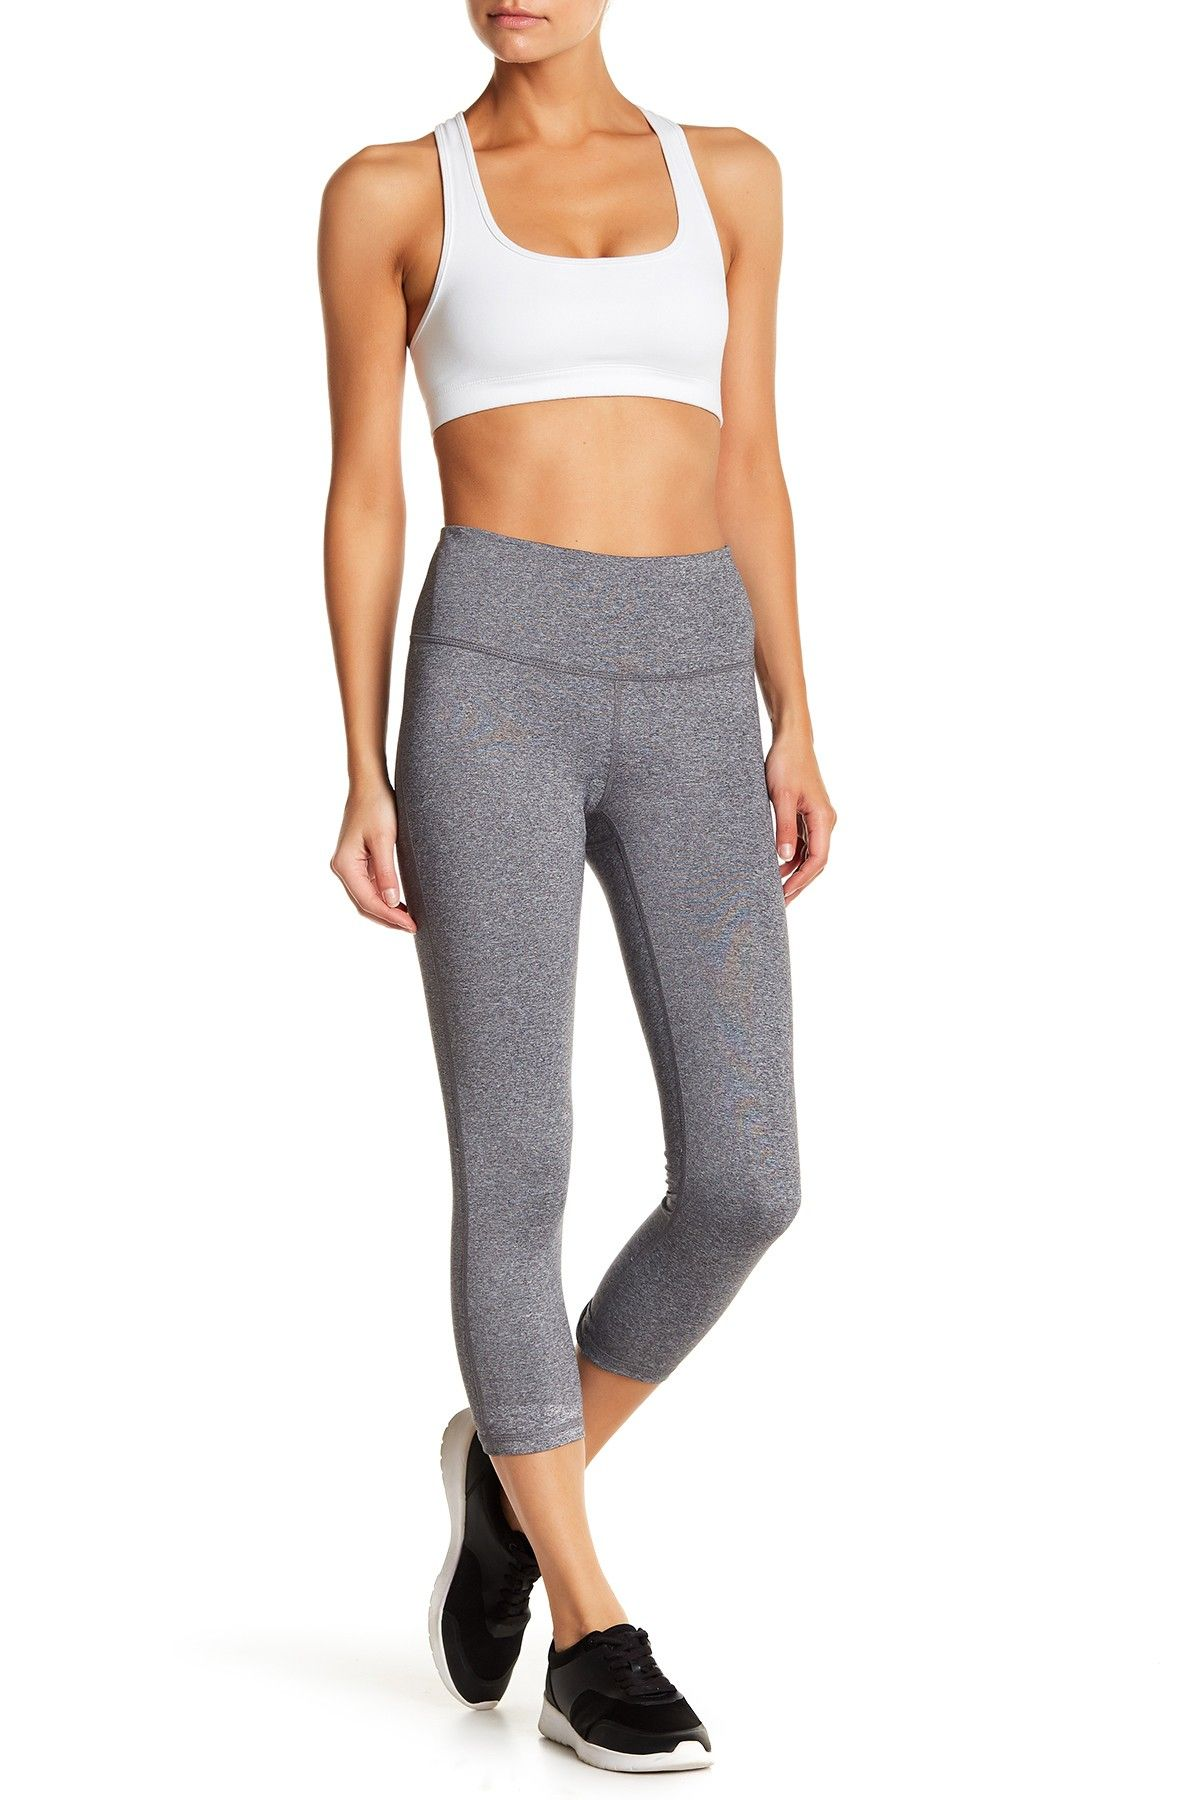 875b2d94e7 Z By Zella - Nexus High Rise Crop Leggings. Free Shipping on orders over  $100.